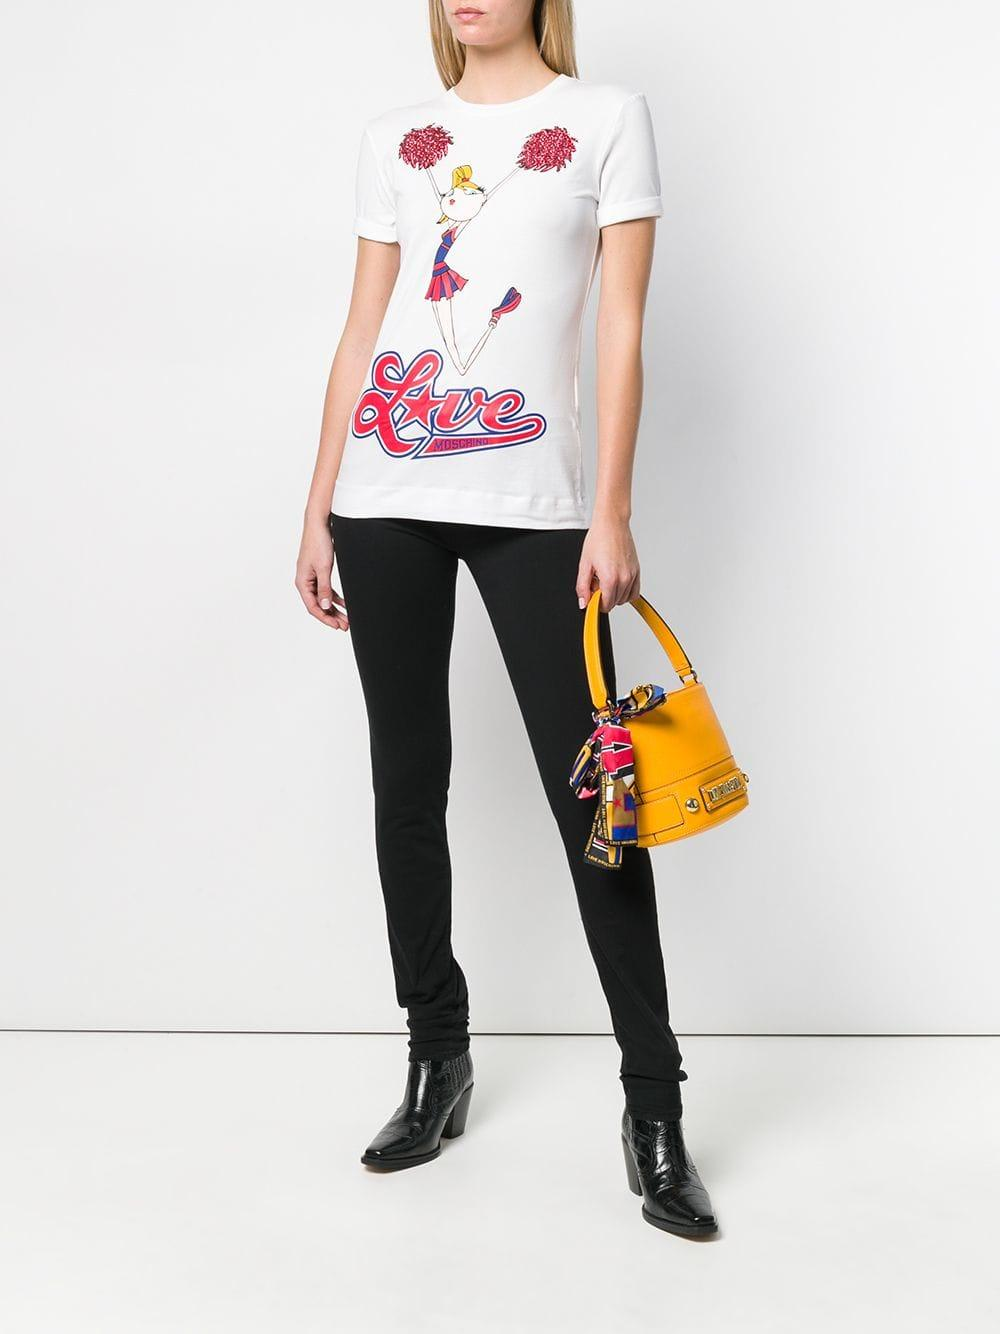 b4ec9d54af0 Lyst - Love Moschino Printed Cheerleader T-shirt in White